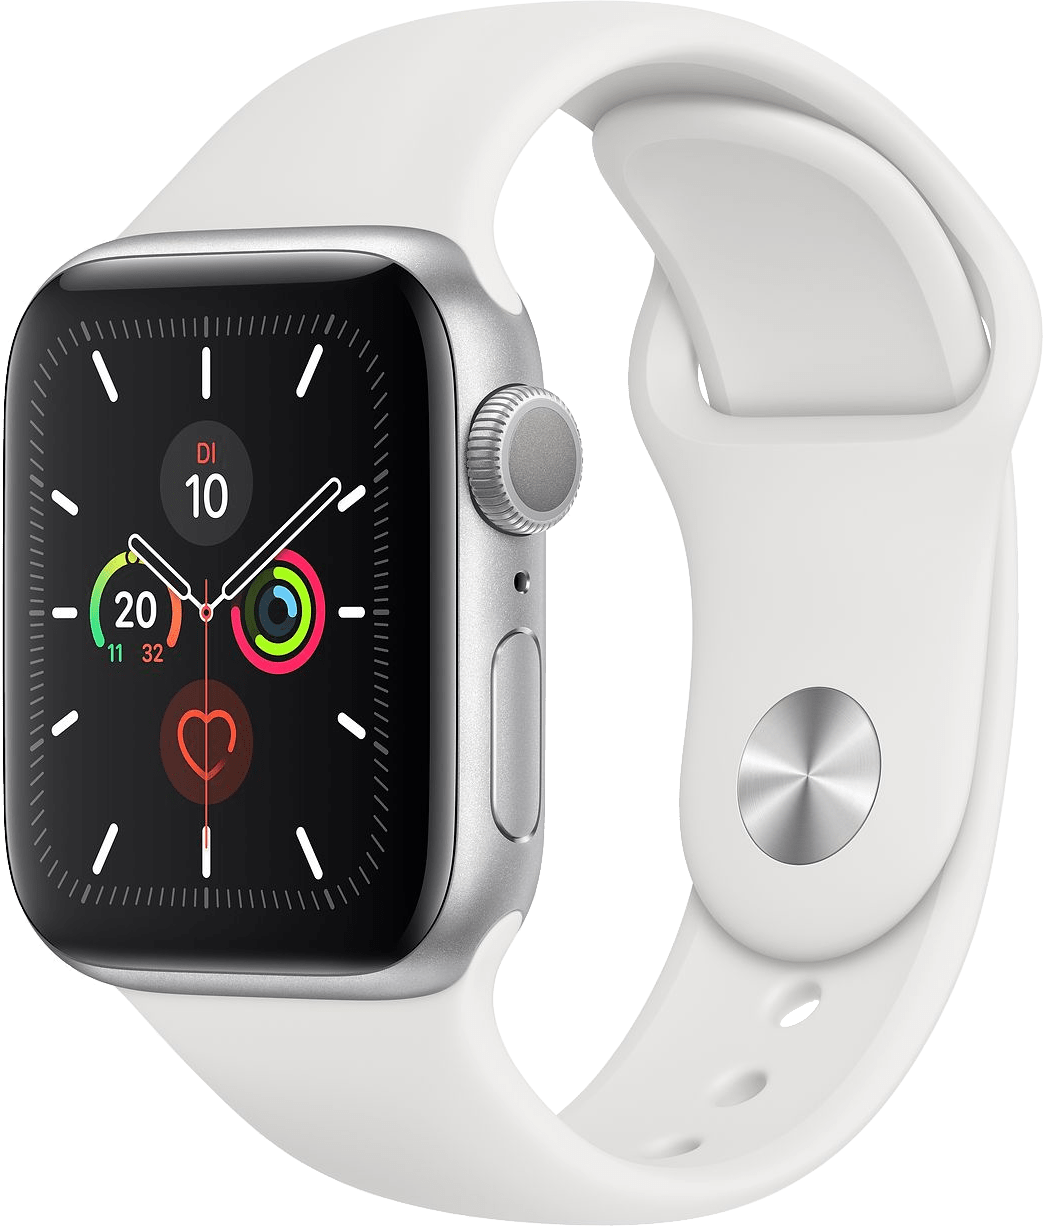 Weiß Apple Watch Series 5 GPS, 40 mm Aluminium-Gehäuse, Sportband.2